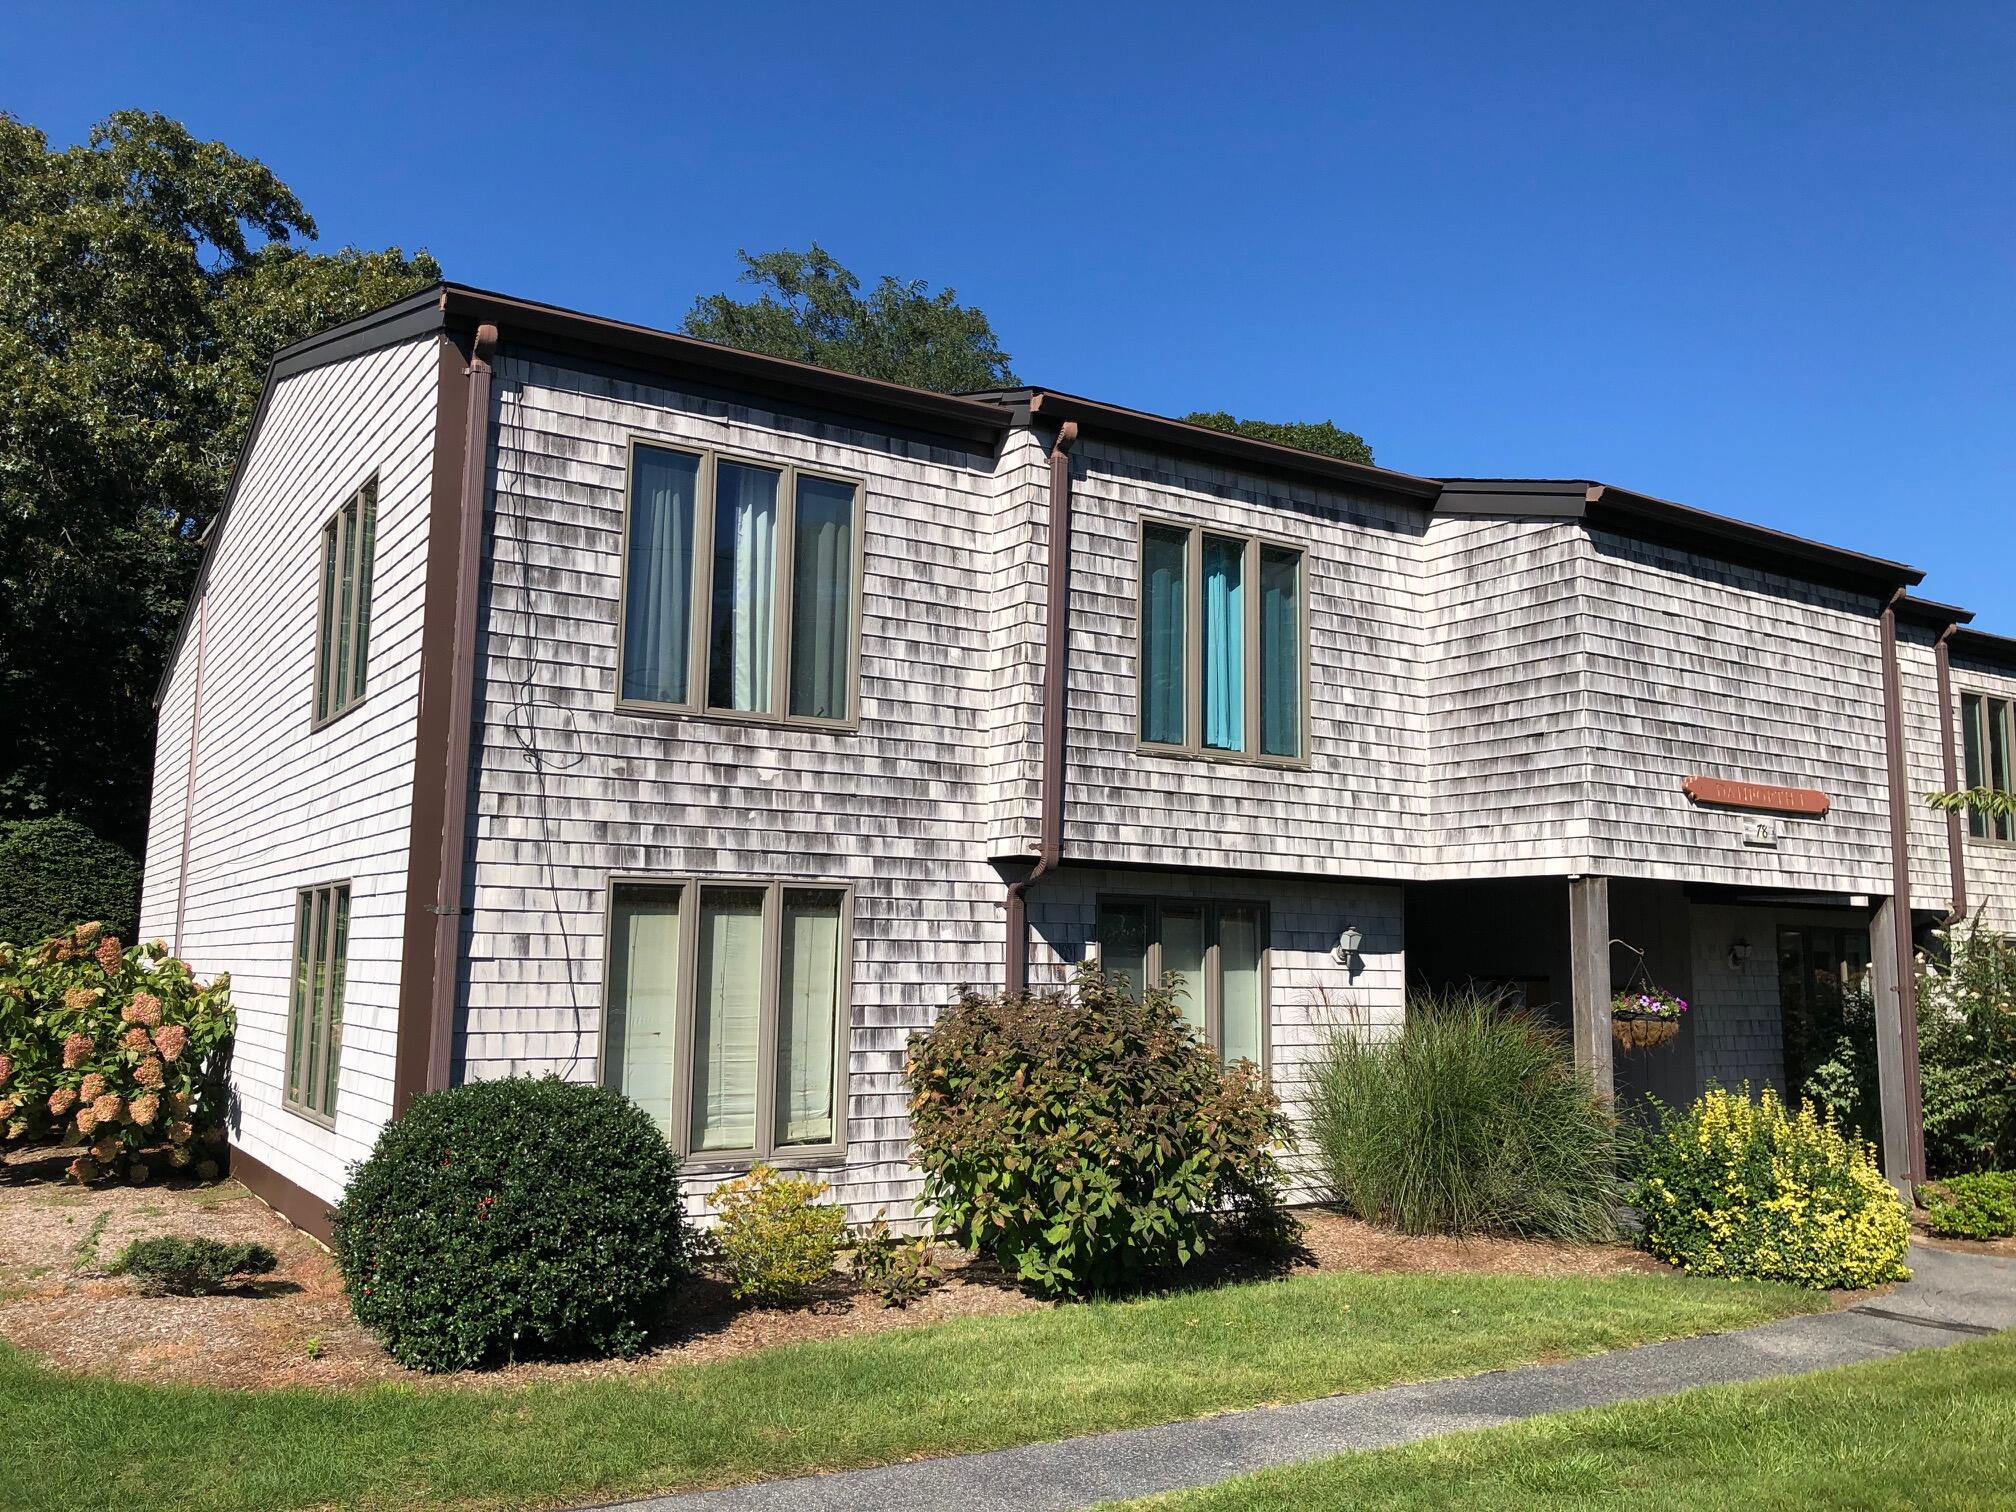 78 Old Colony Way, Orleans MA, 02653 details